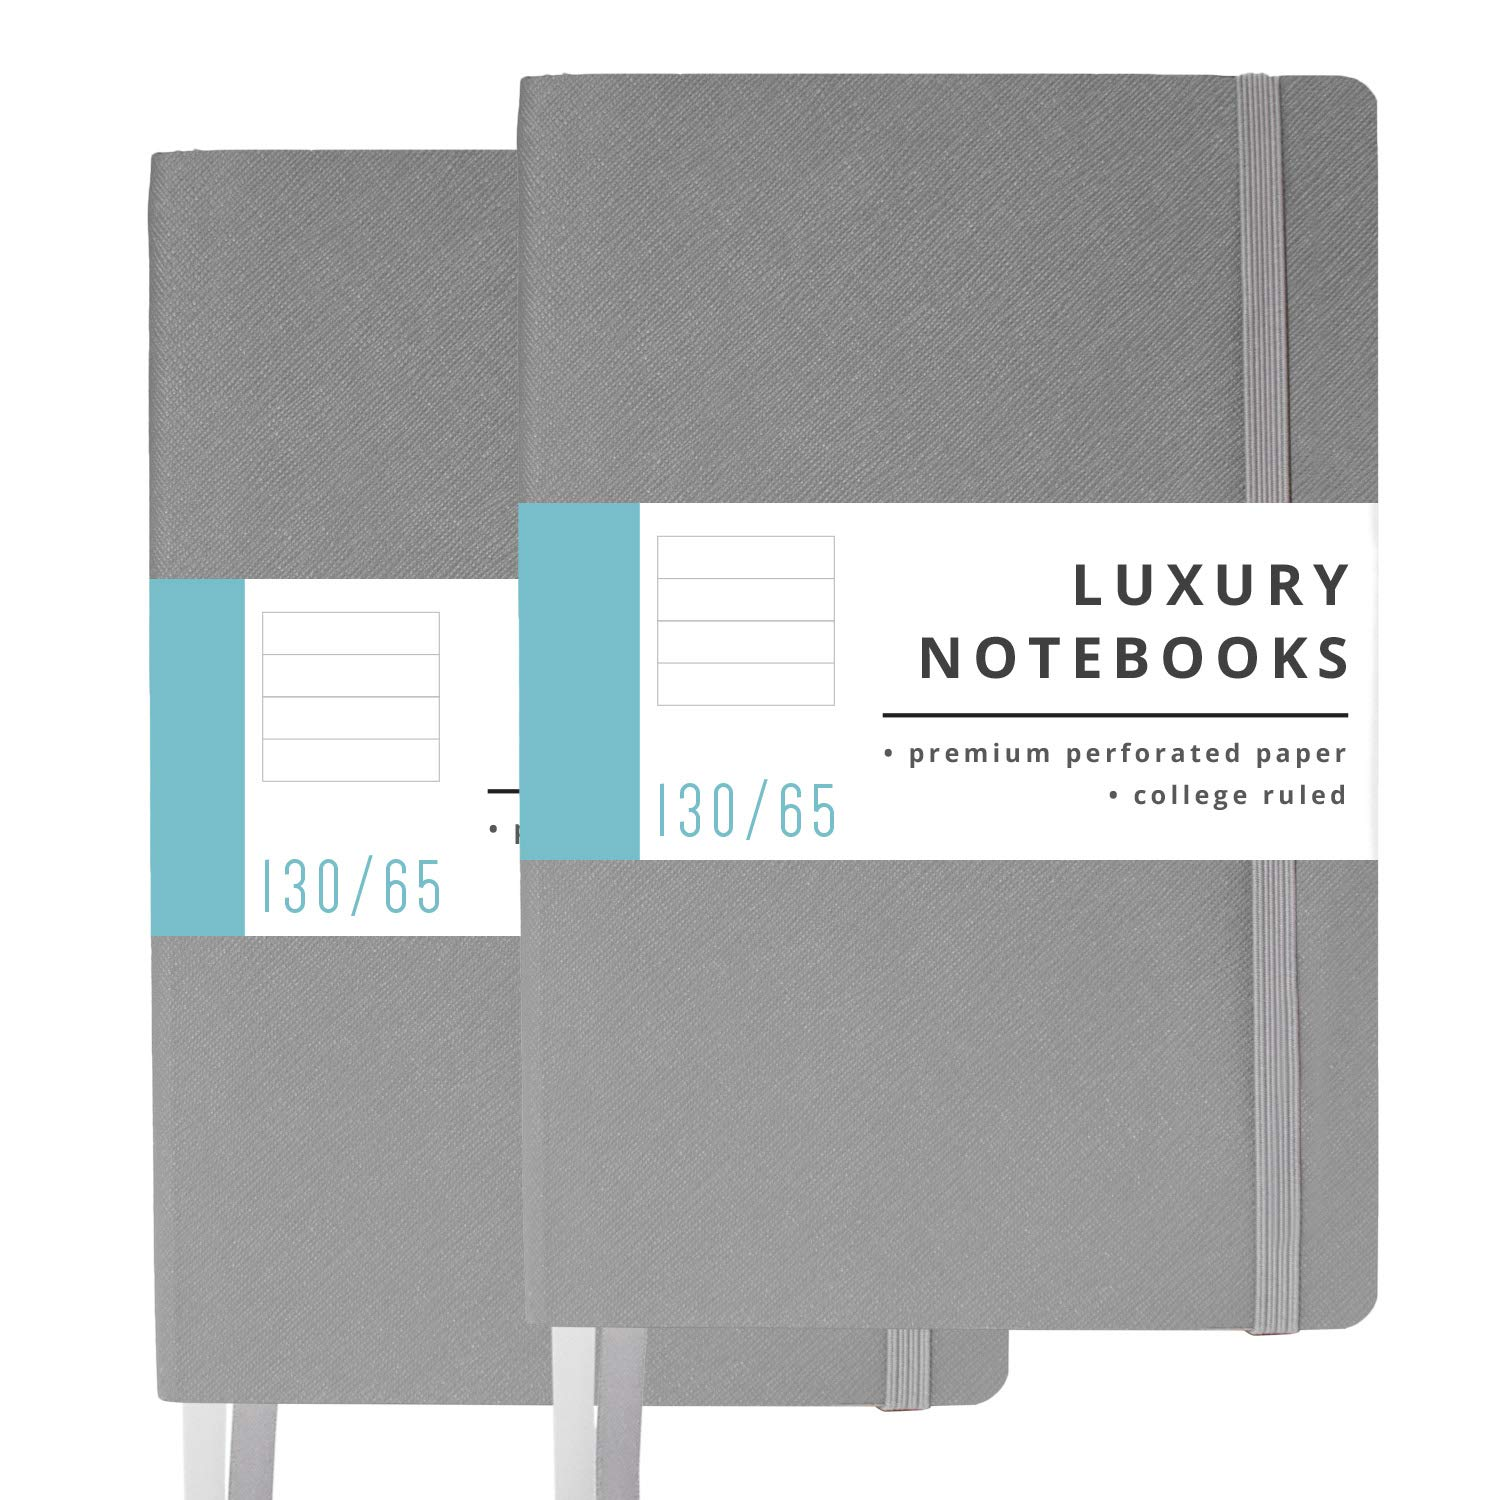 2 Pack Luxury Notebook Journal - 130 Perforated Pages - Thick Paper (120 gsm) - Lay Flat Design - 2 Bookmarks - Elastic Closure - Back Pocket, Set of 2, Softcover, Steel Gray (College Ruled) by Papercode